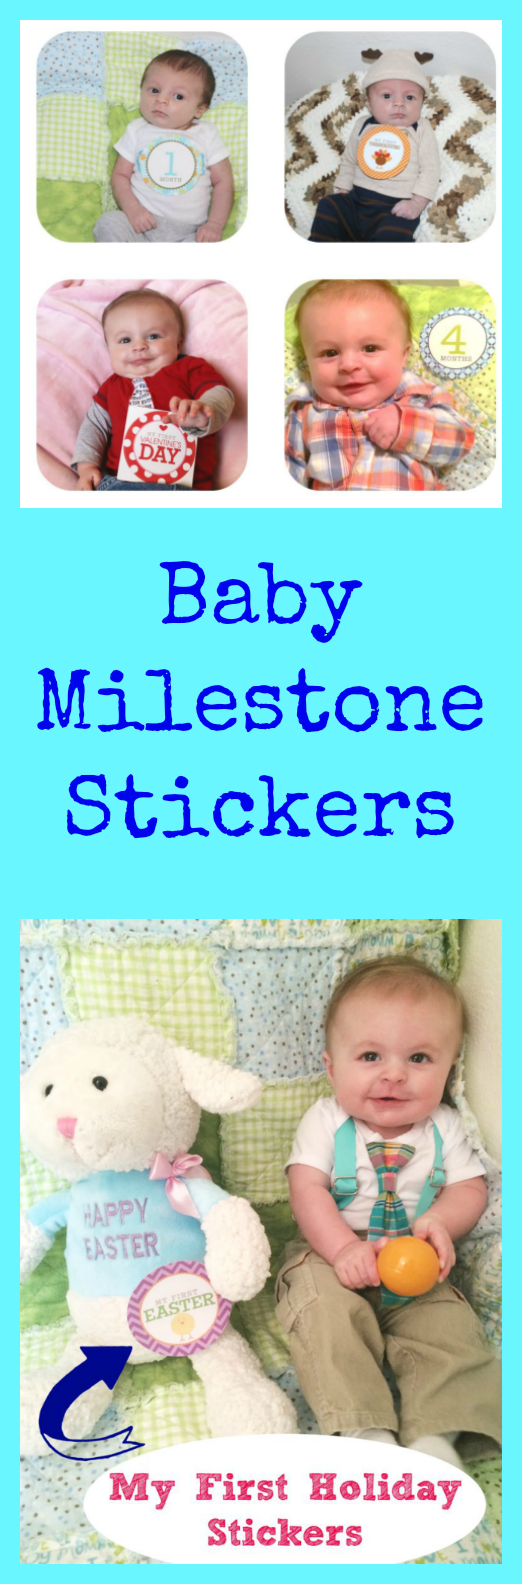 Celebrate baby's milestones by taking photos with baby monthly stickers. You can commemorate both each month of age, as well as their first holidays!